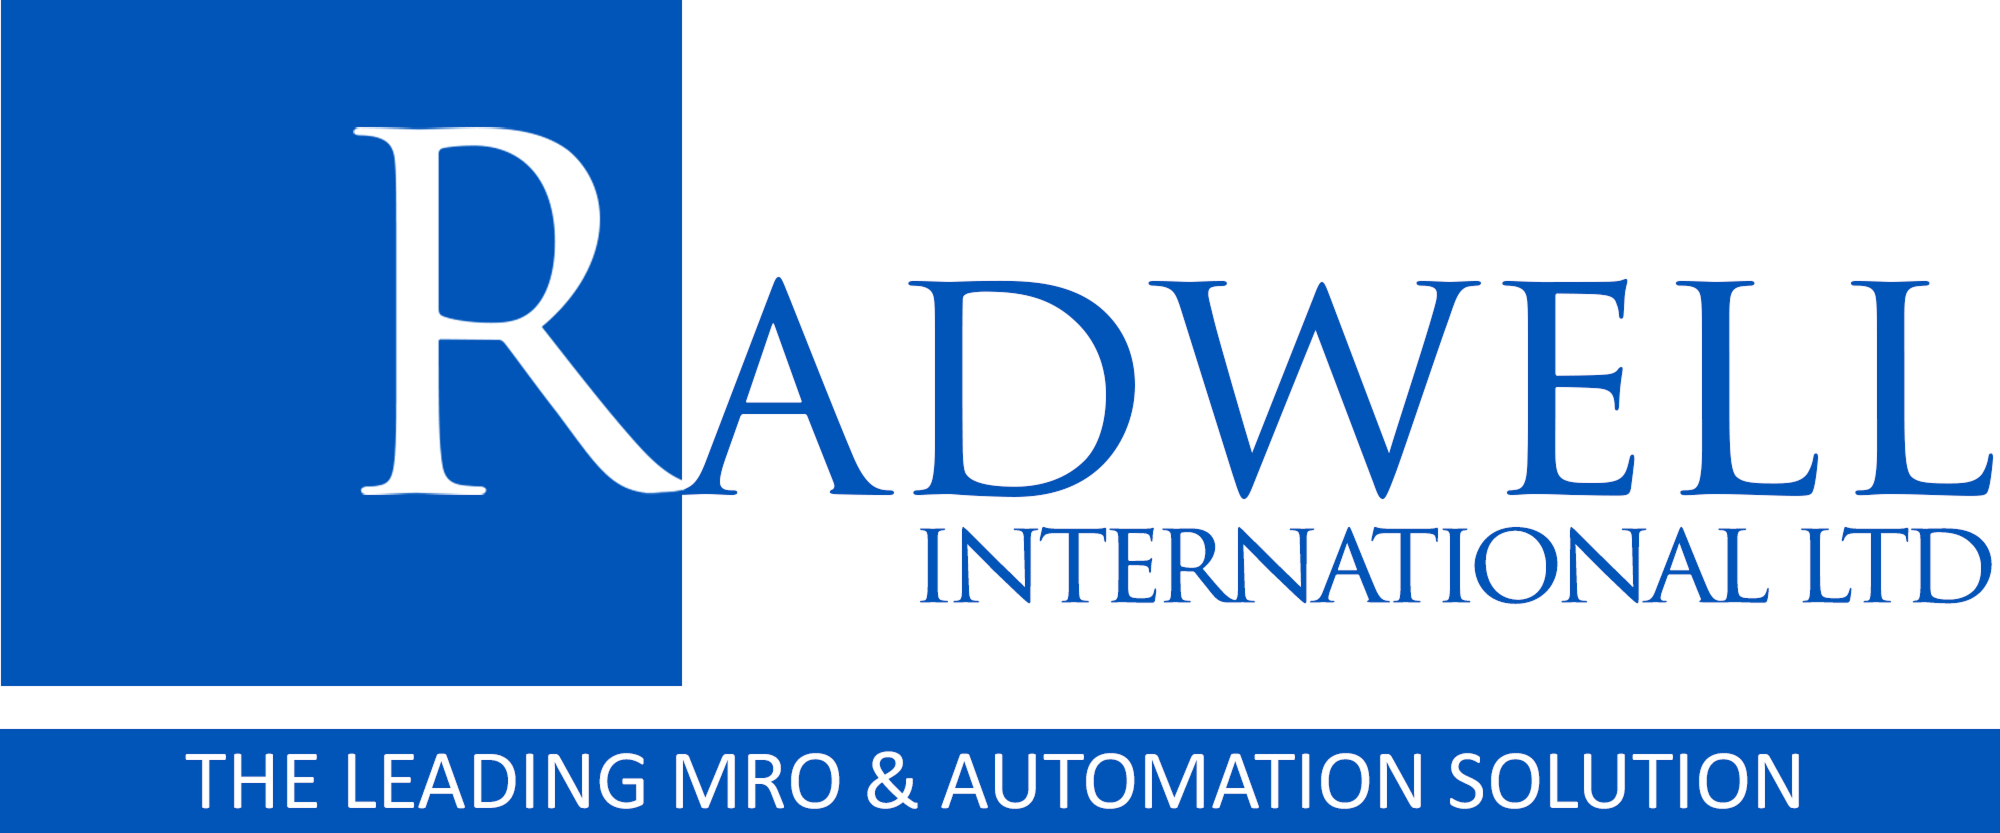 Radwell International Ltd